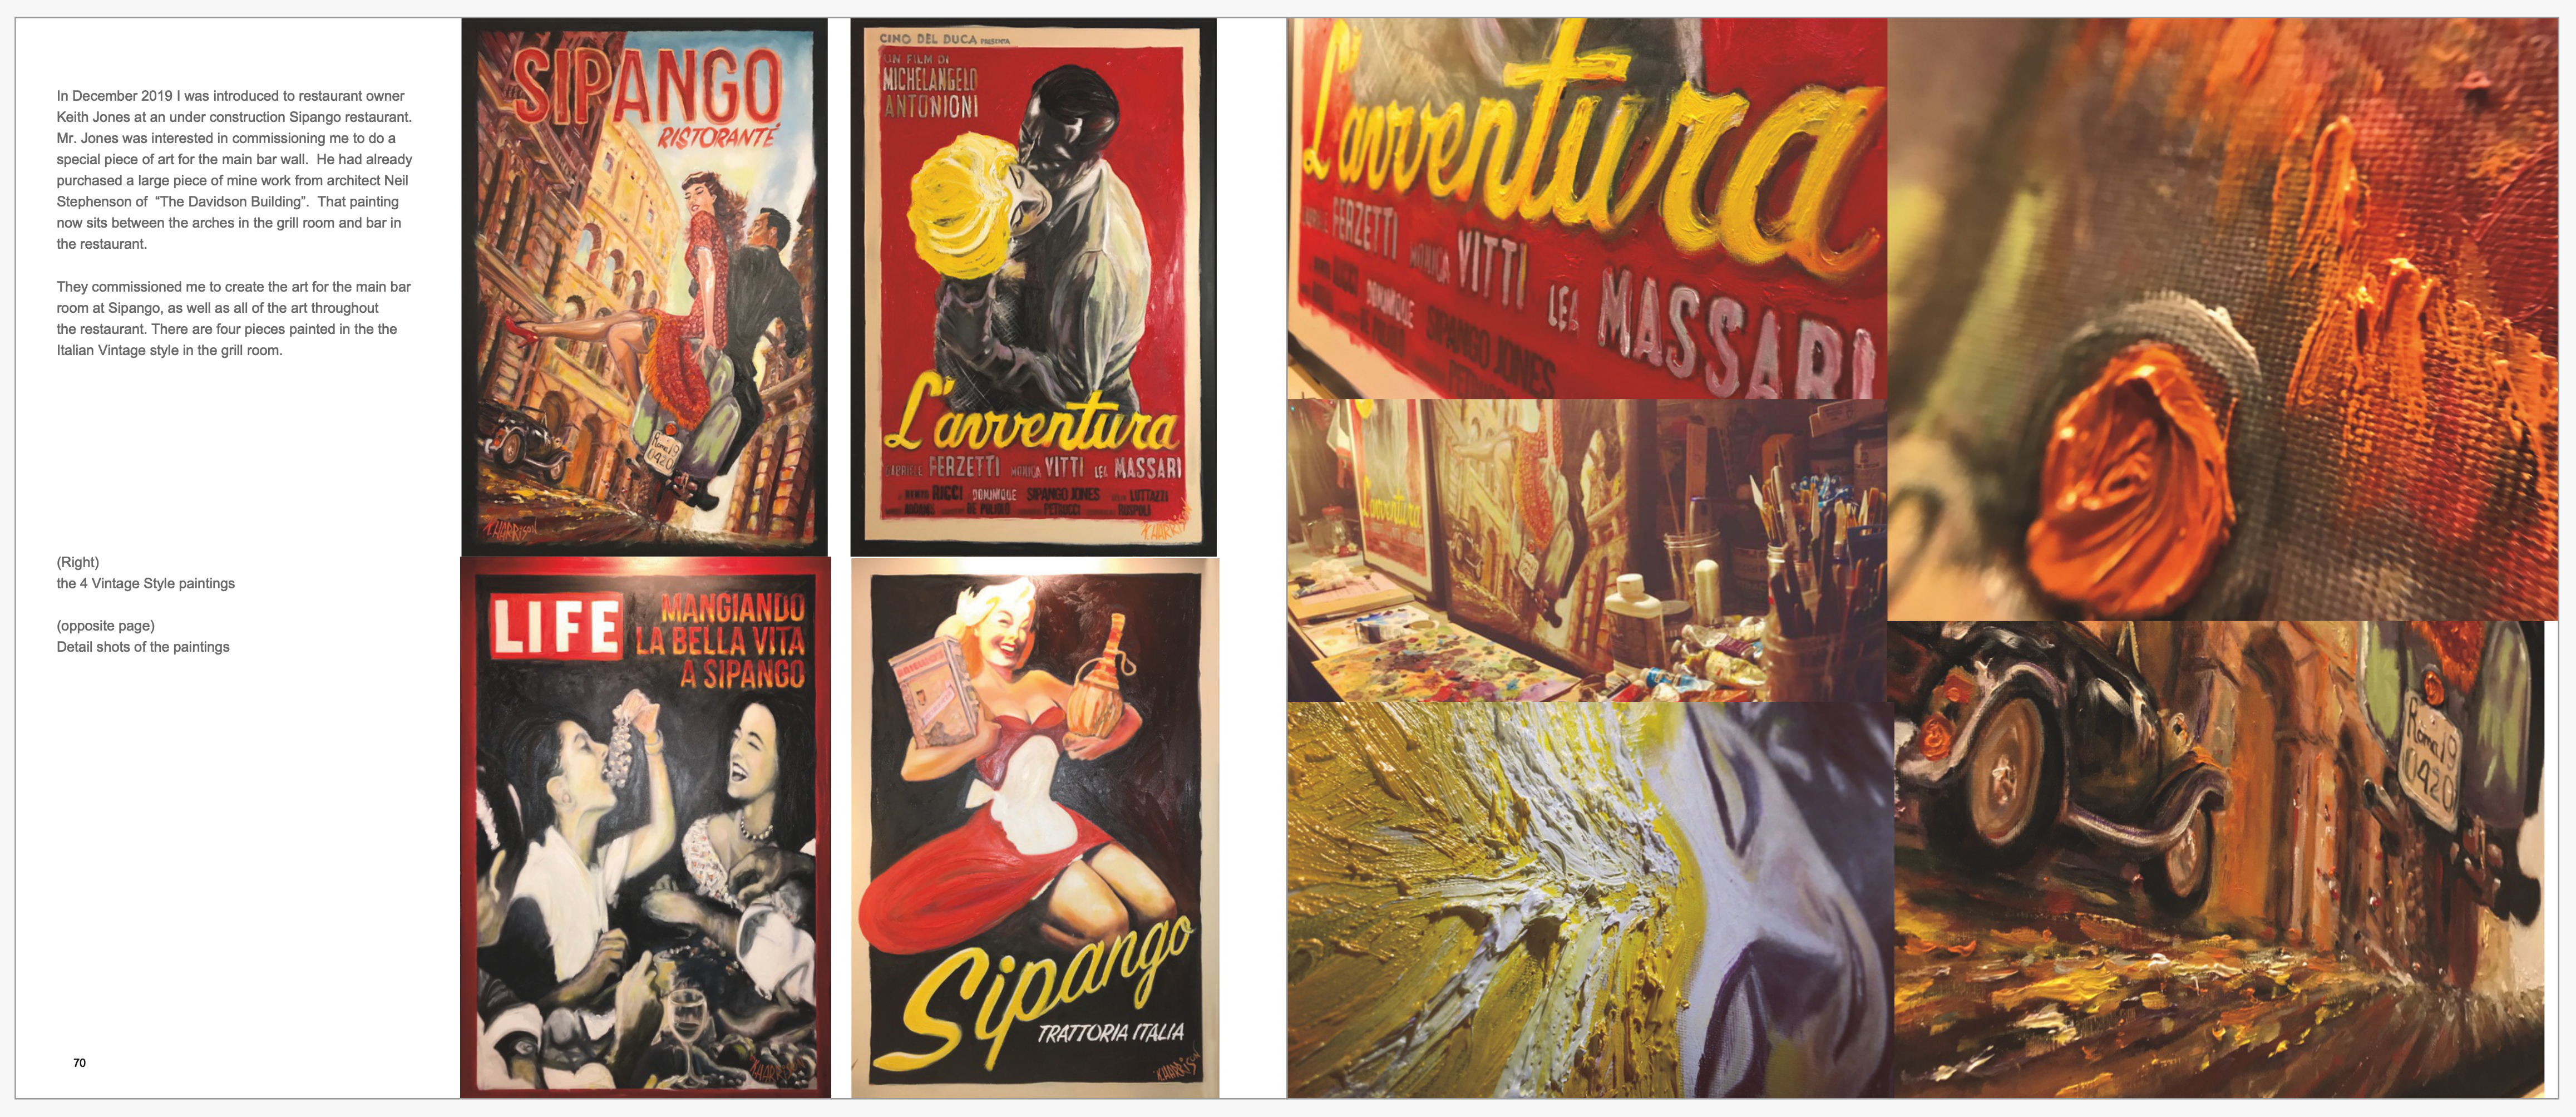 SIPANGO VINTAGE ITALIAN Paintings by Kev